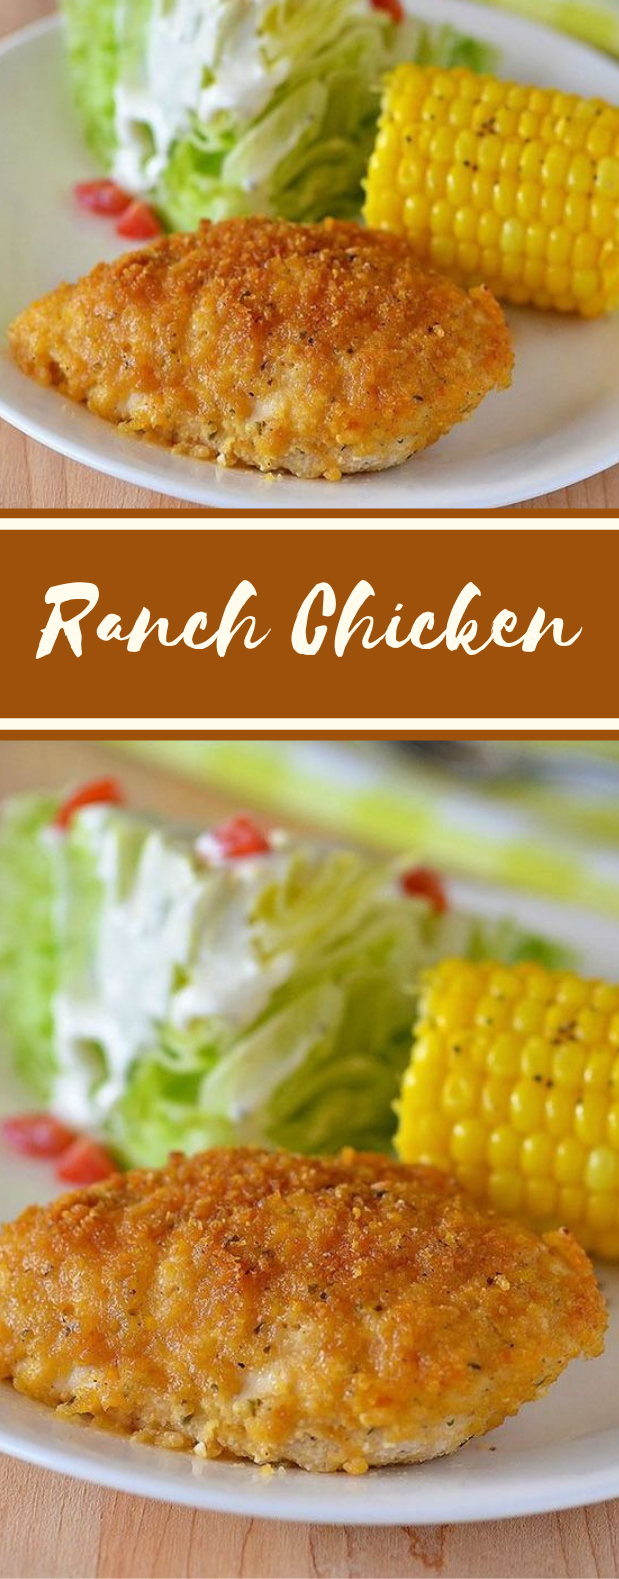 Ranch Chicken #dinner #chicken